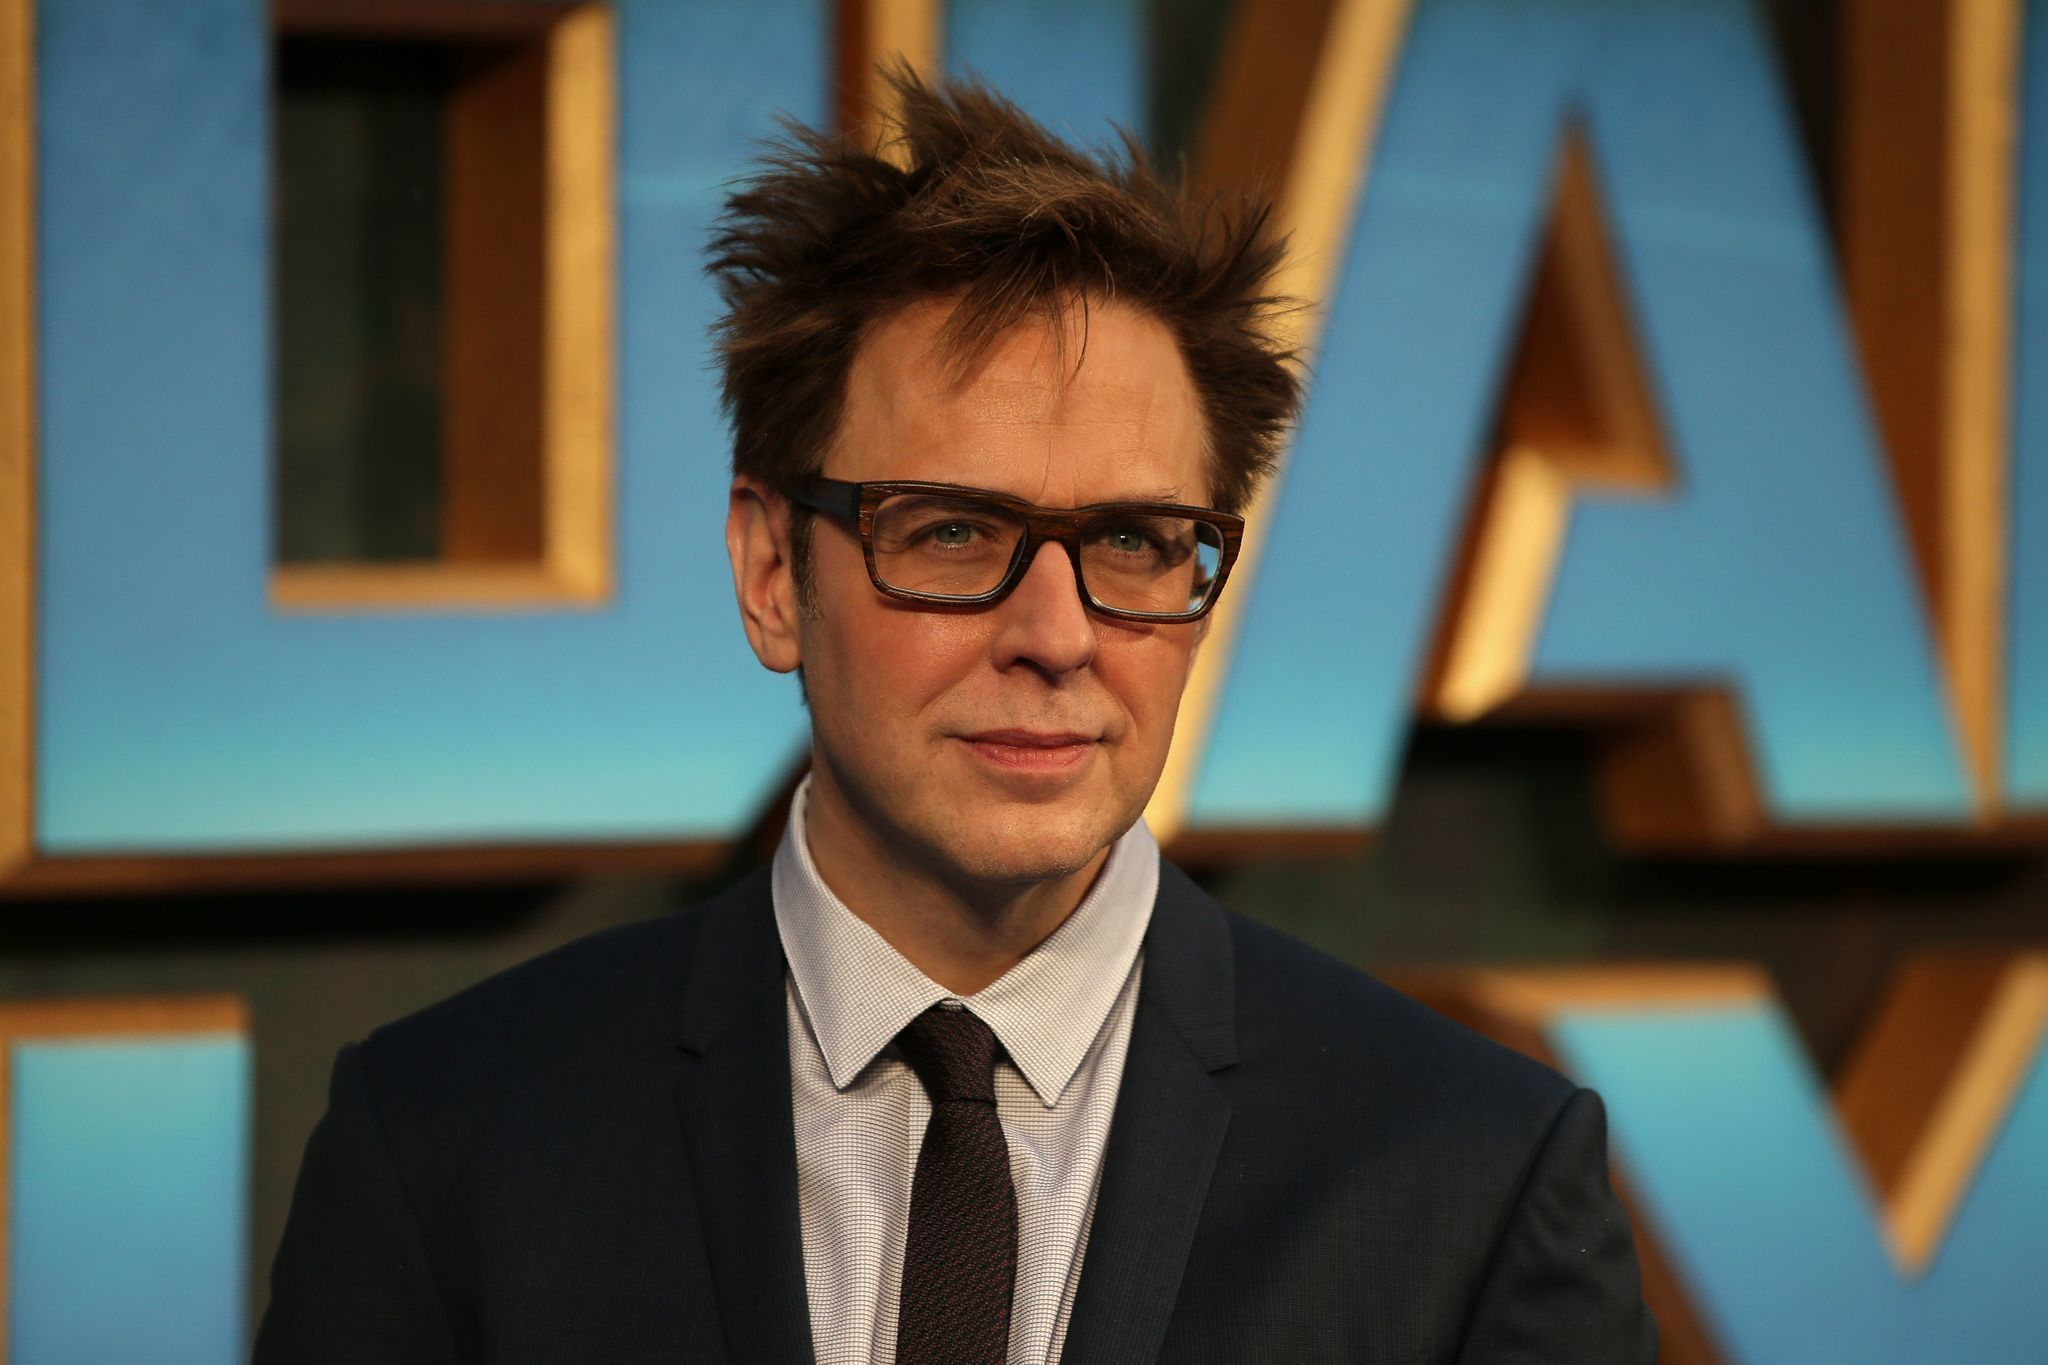 'Guardians Of The Galaxy' Director James Gunn Says He's